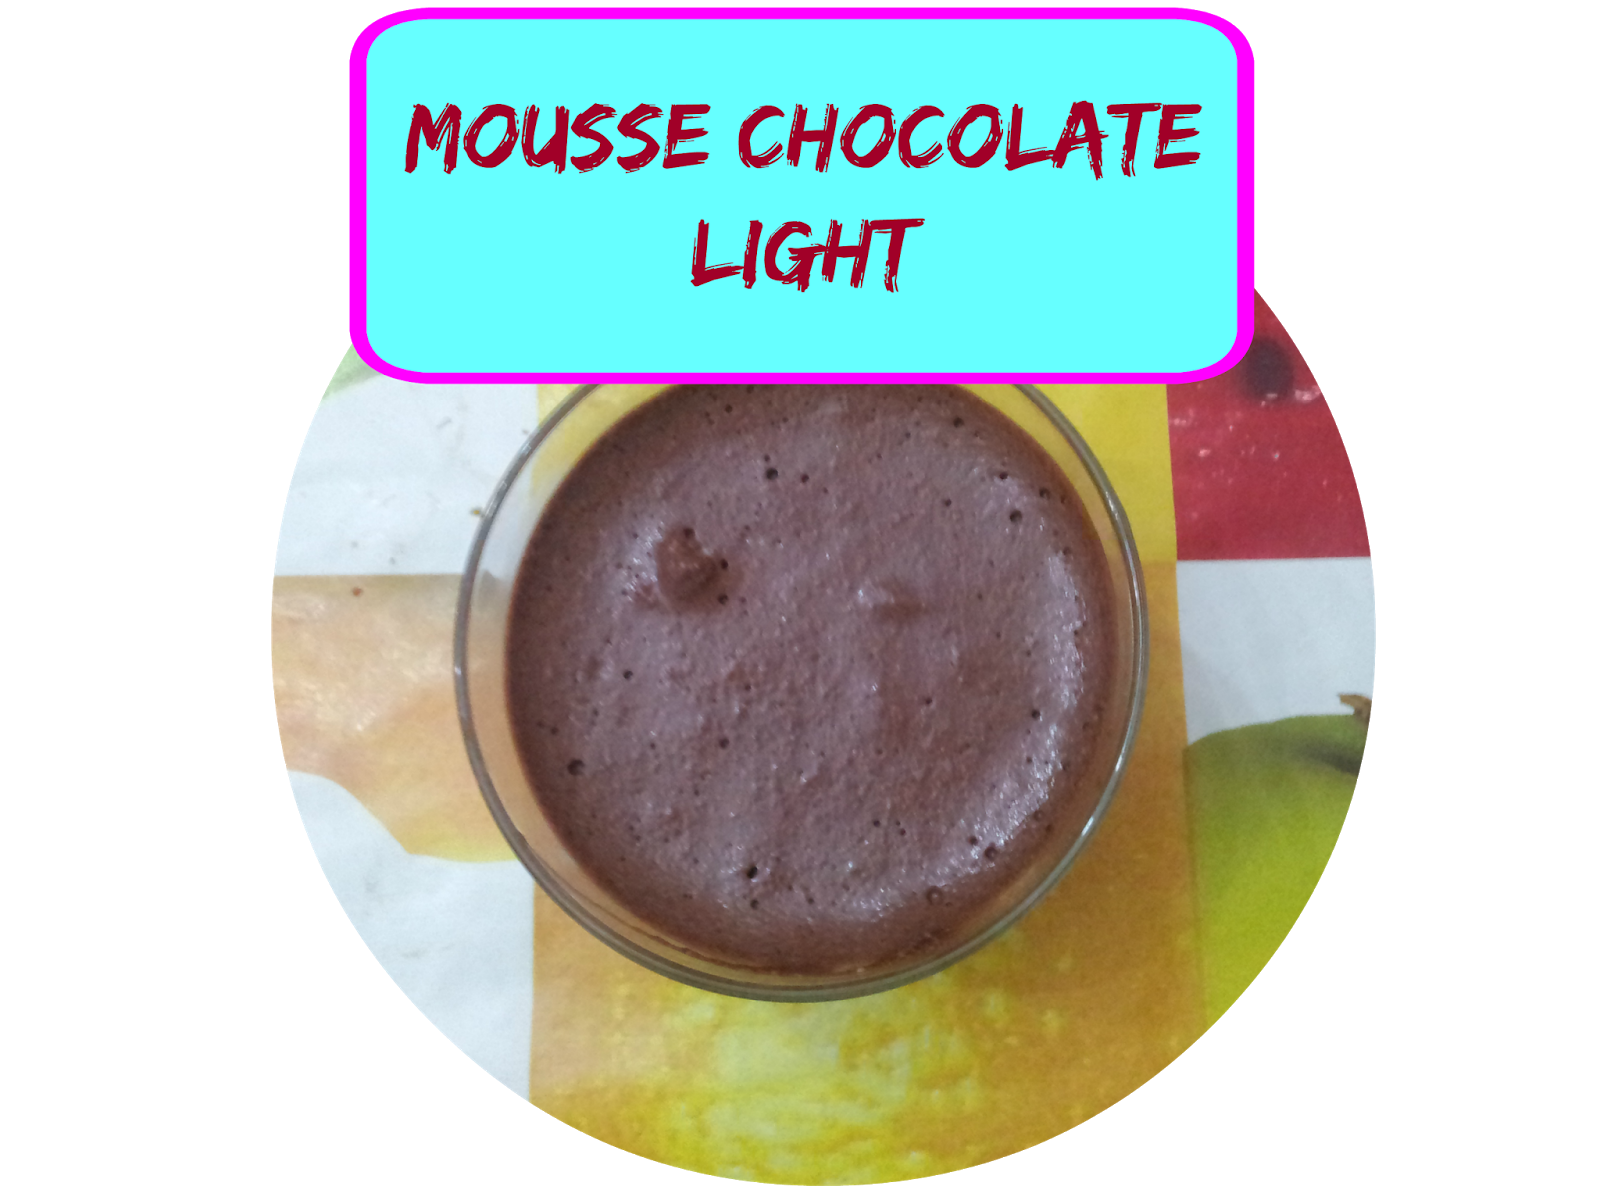 ¡MOUSSE CHOCOLATE LIGHT!